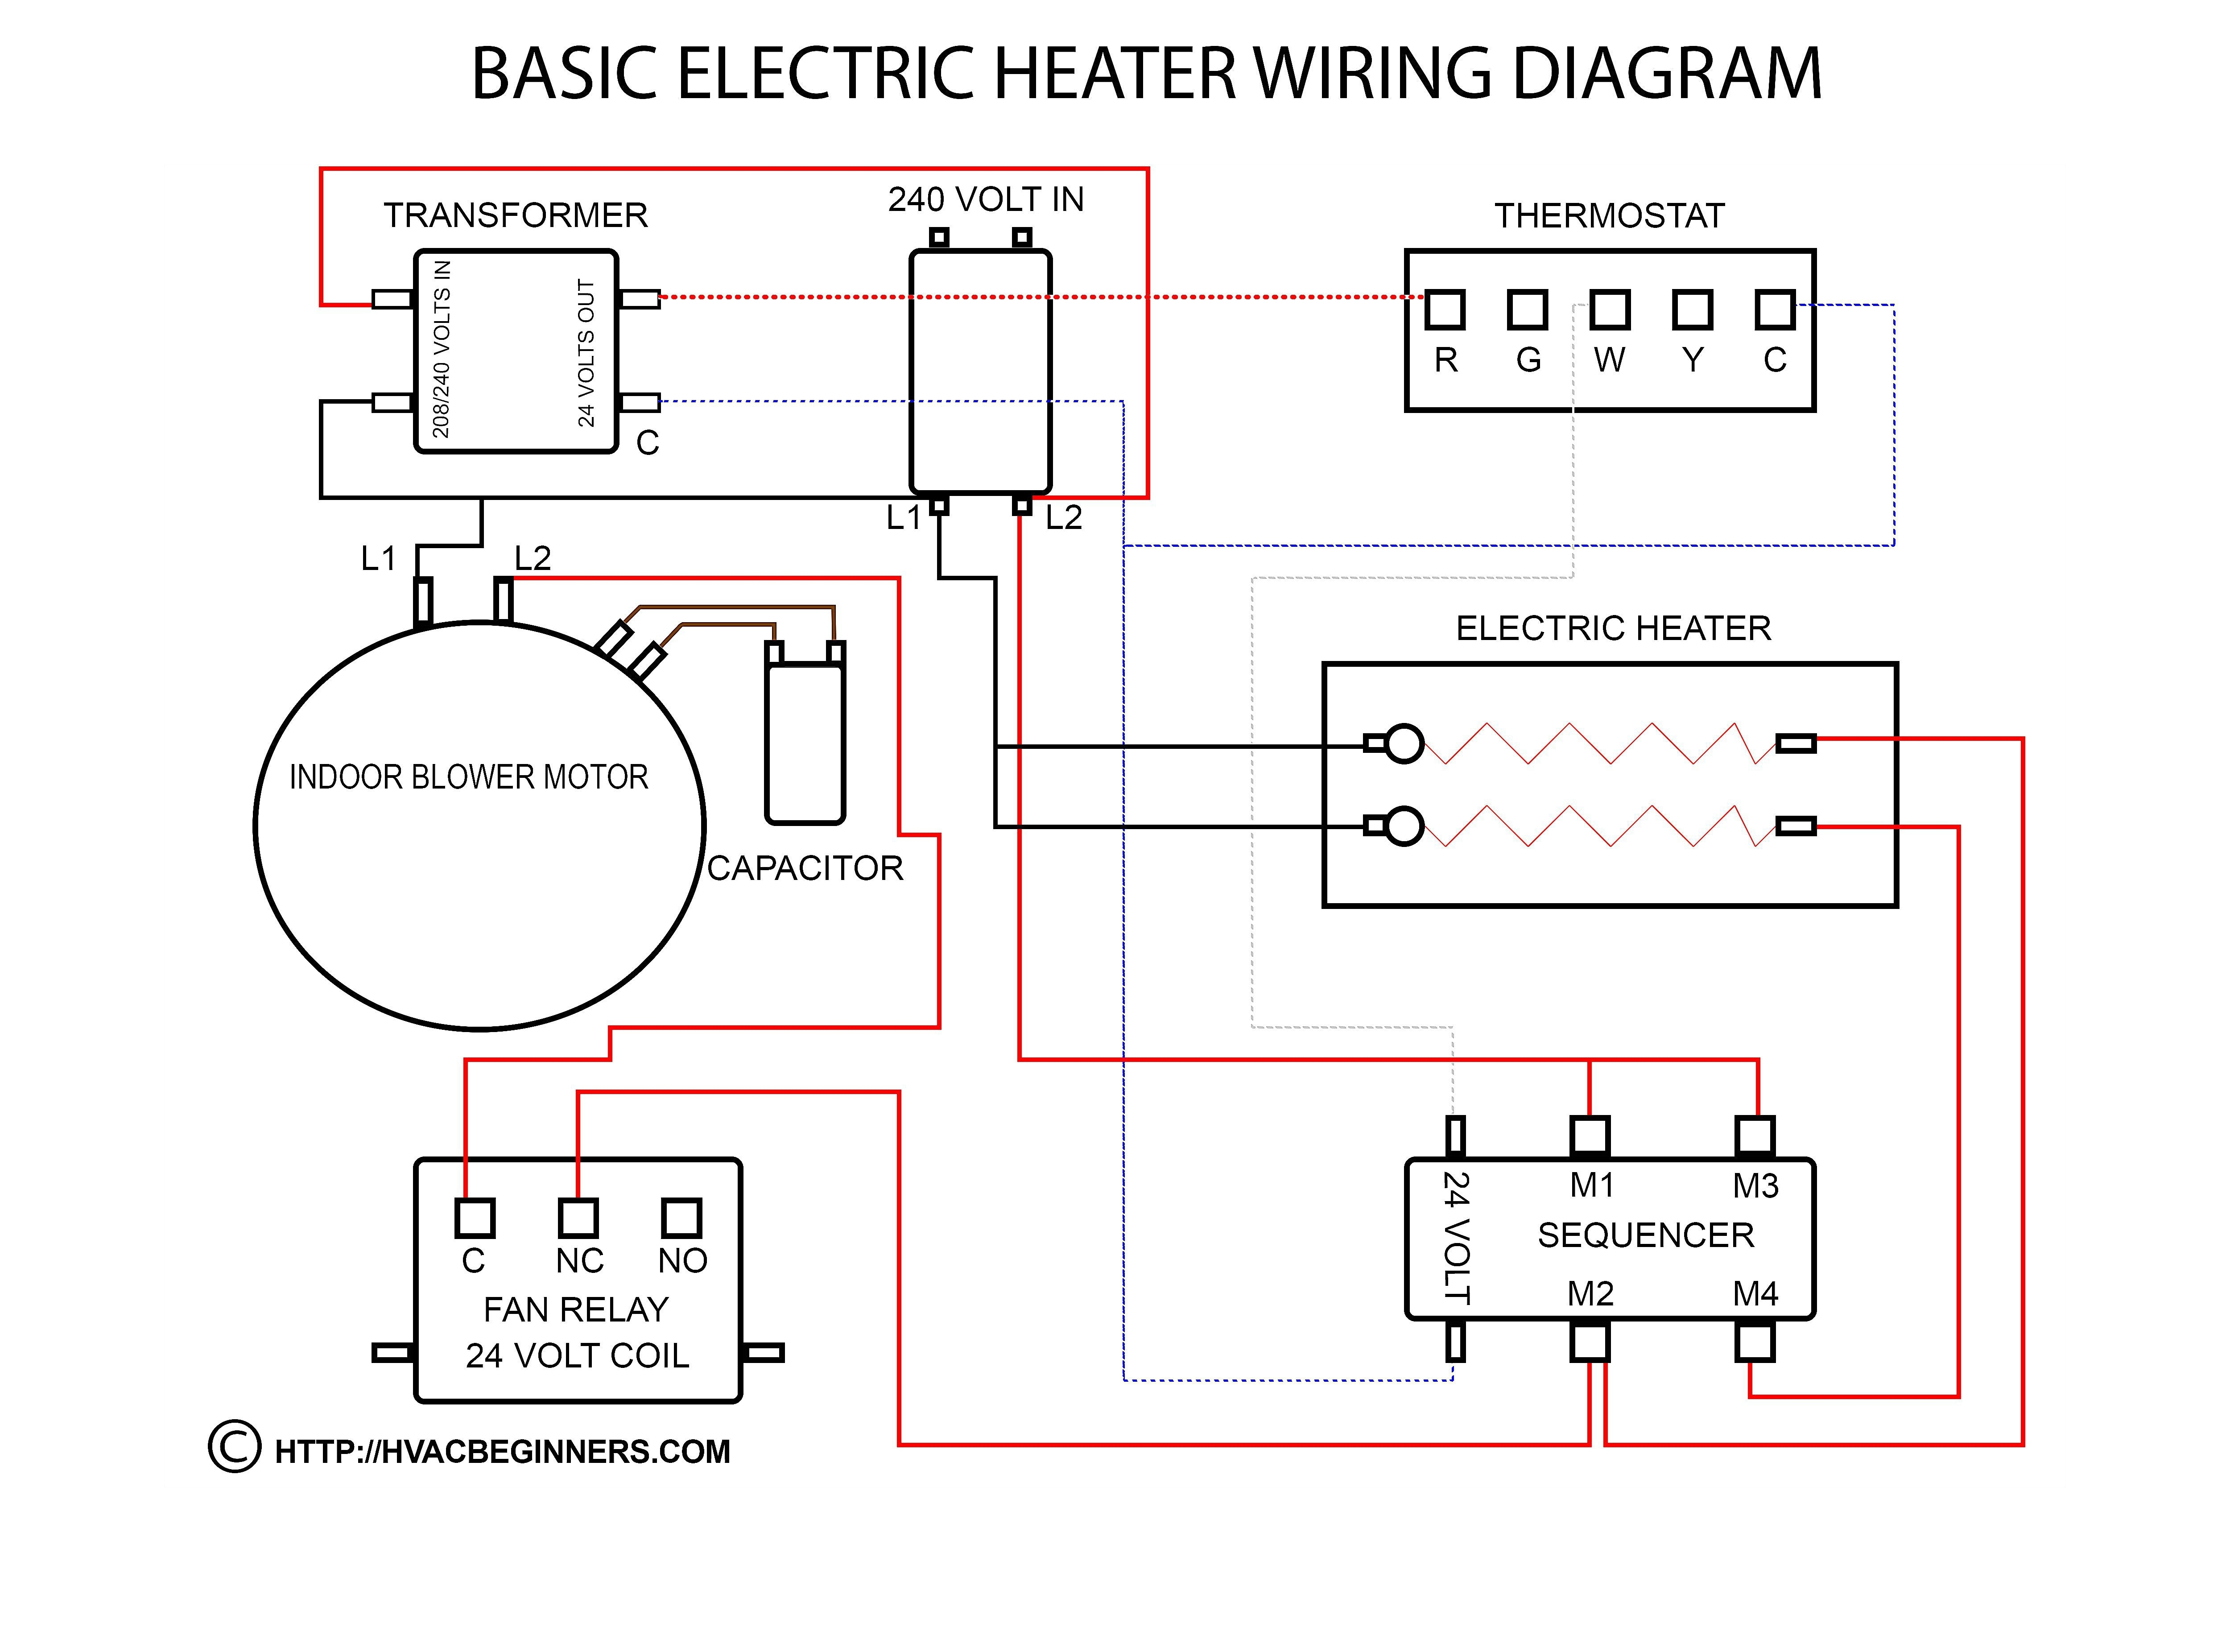 vehicle trailer wiring diagram Collection-Wiring Diagram for S Plan Simple Wiring Diagram for Trailer Valid Http Wikidiyfaqorguk 0 0d 4-s